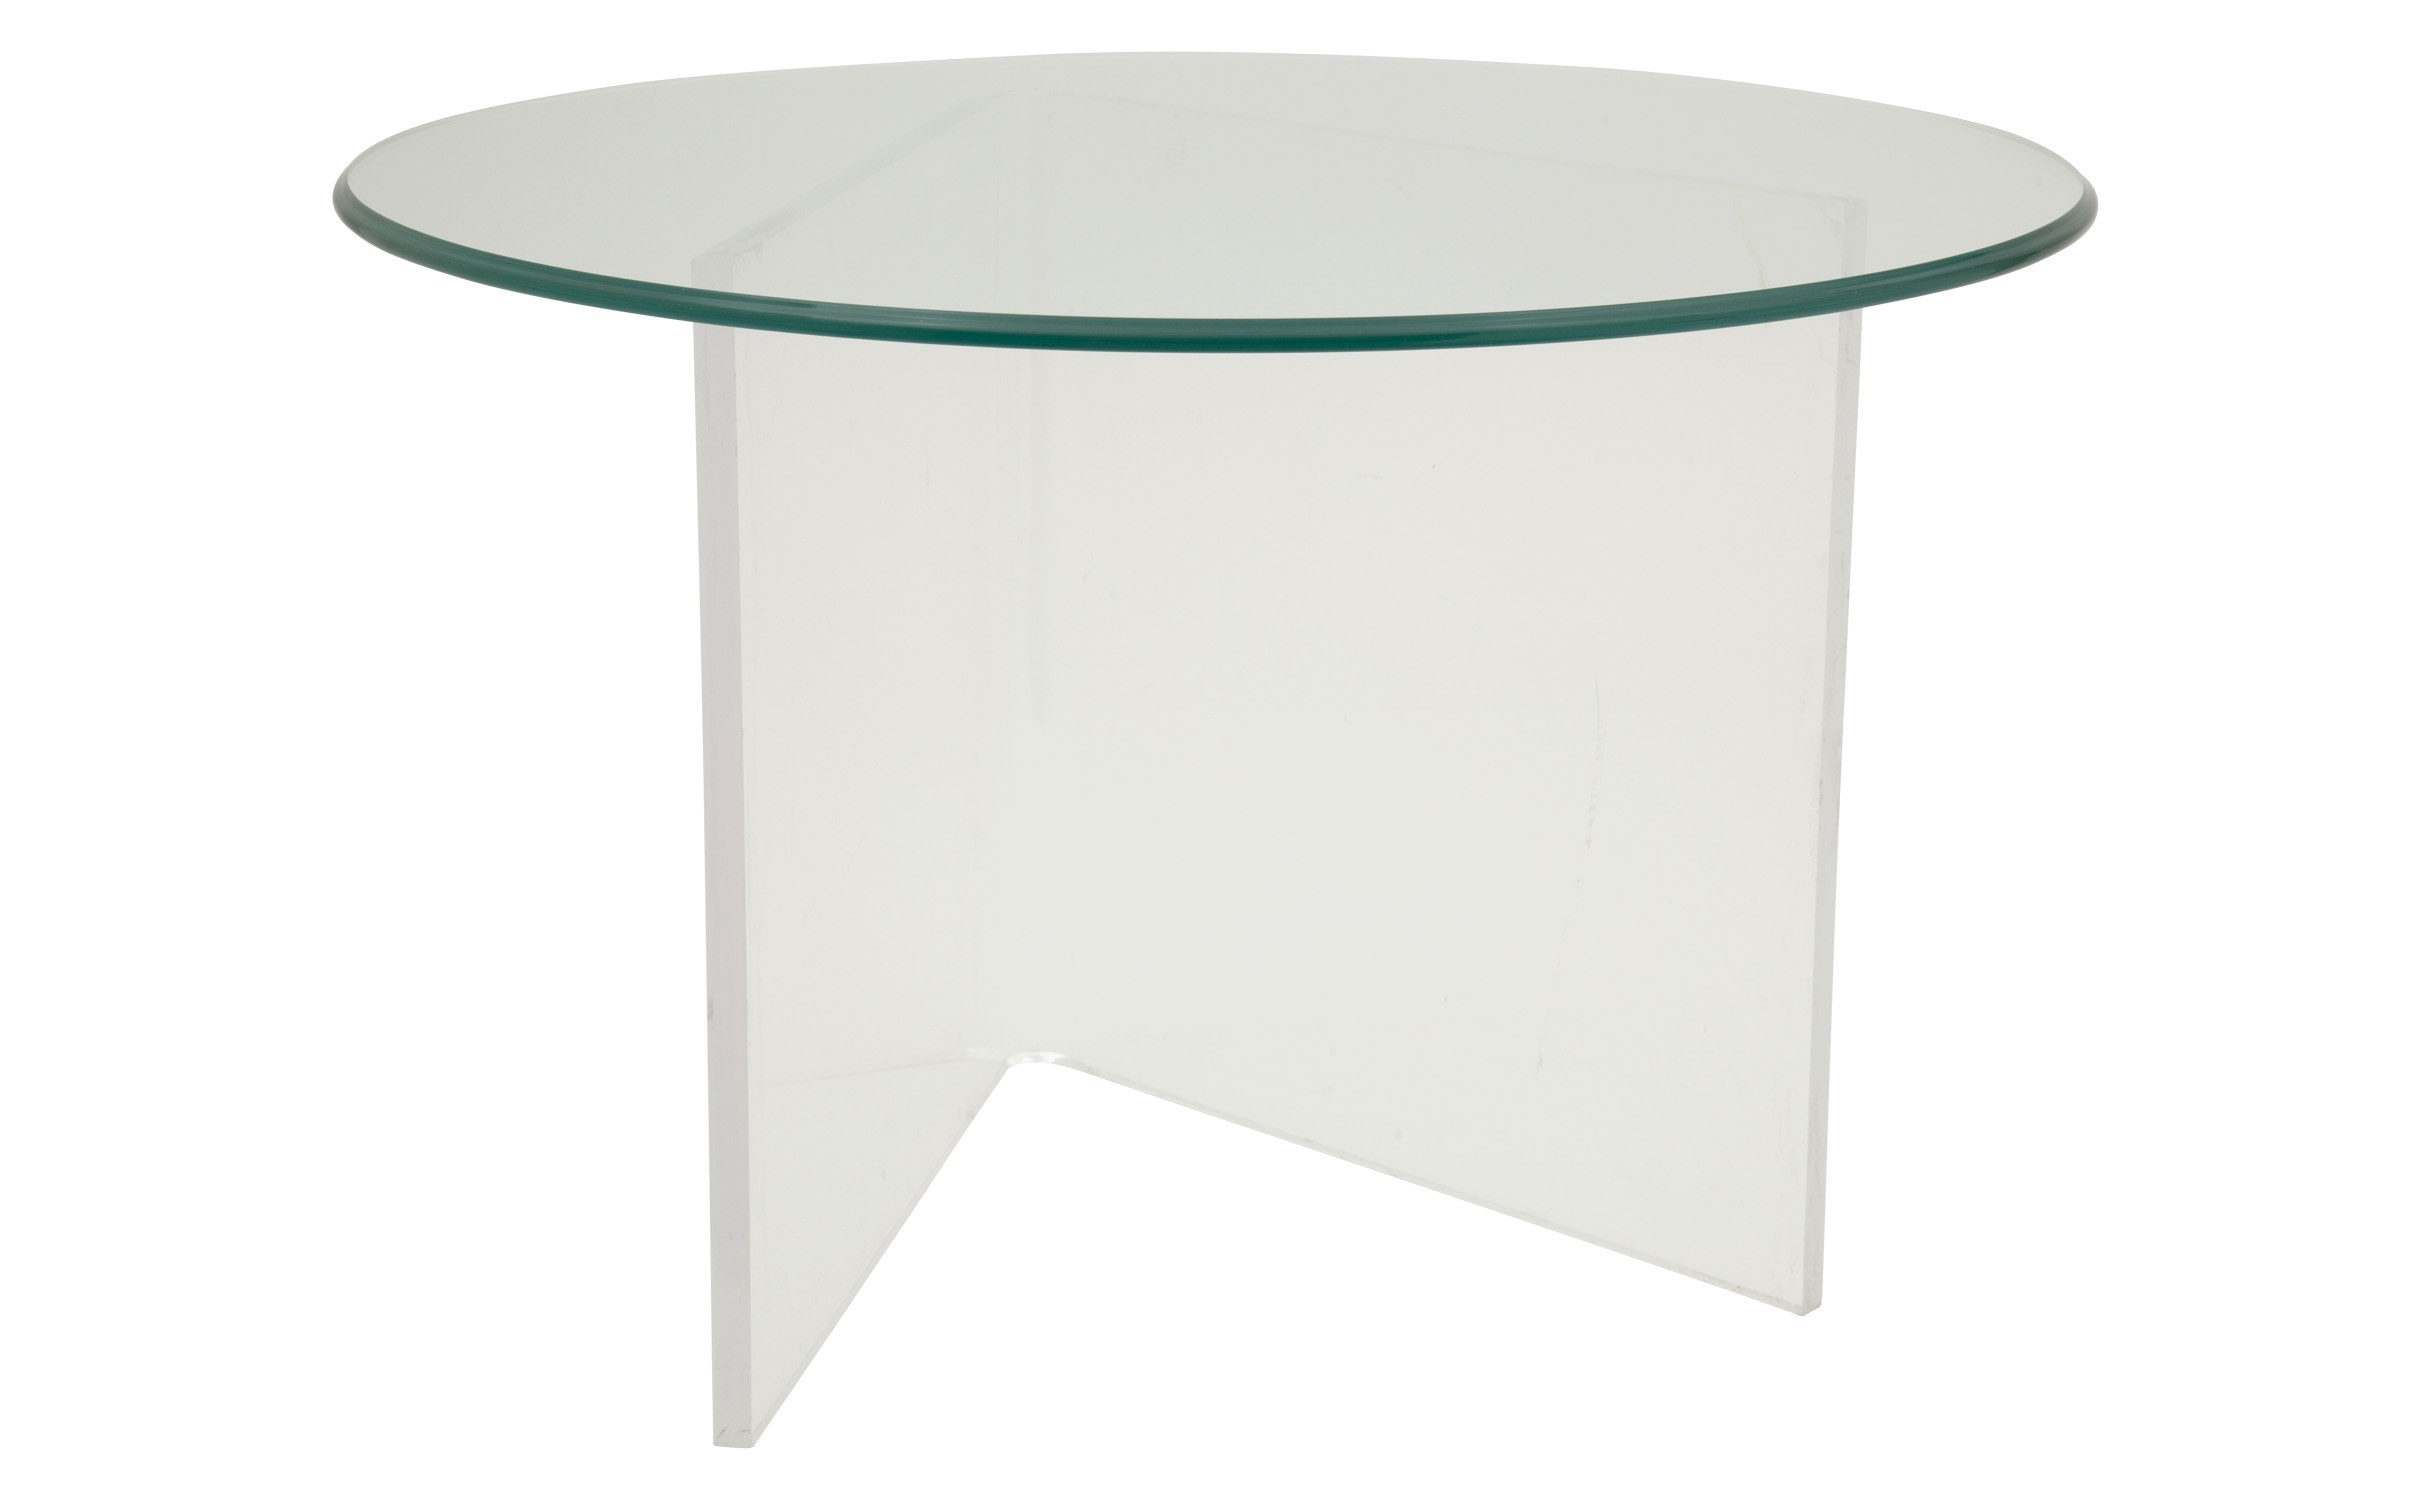 best round lucite coffee table with small accent tableputiloan white wine storage furniture cabinet oak wood side perspex wilcox inexpensive console ikea metal outdoor swing chair